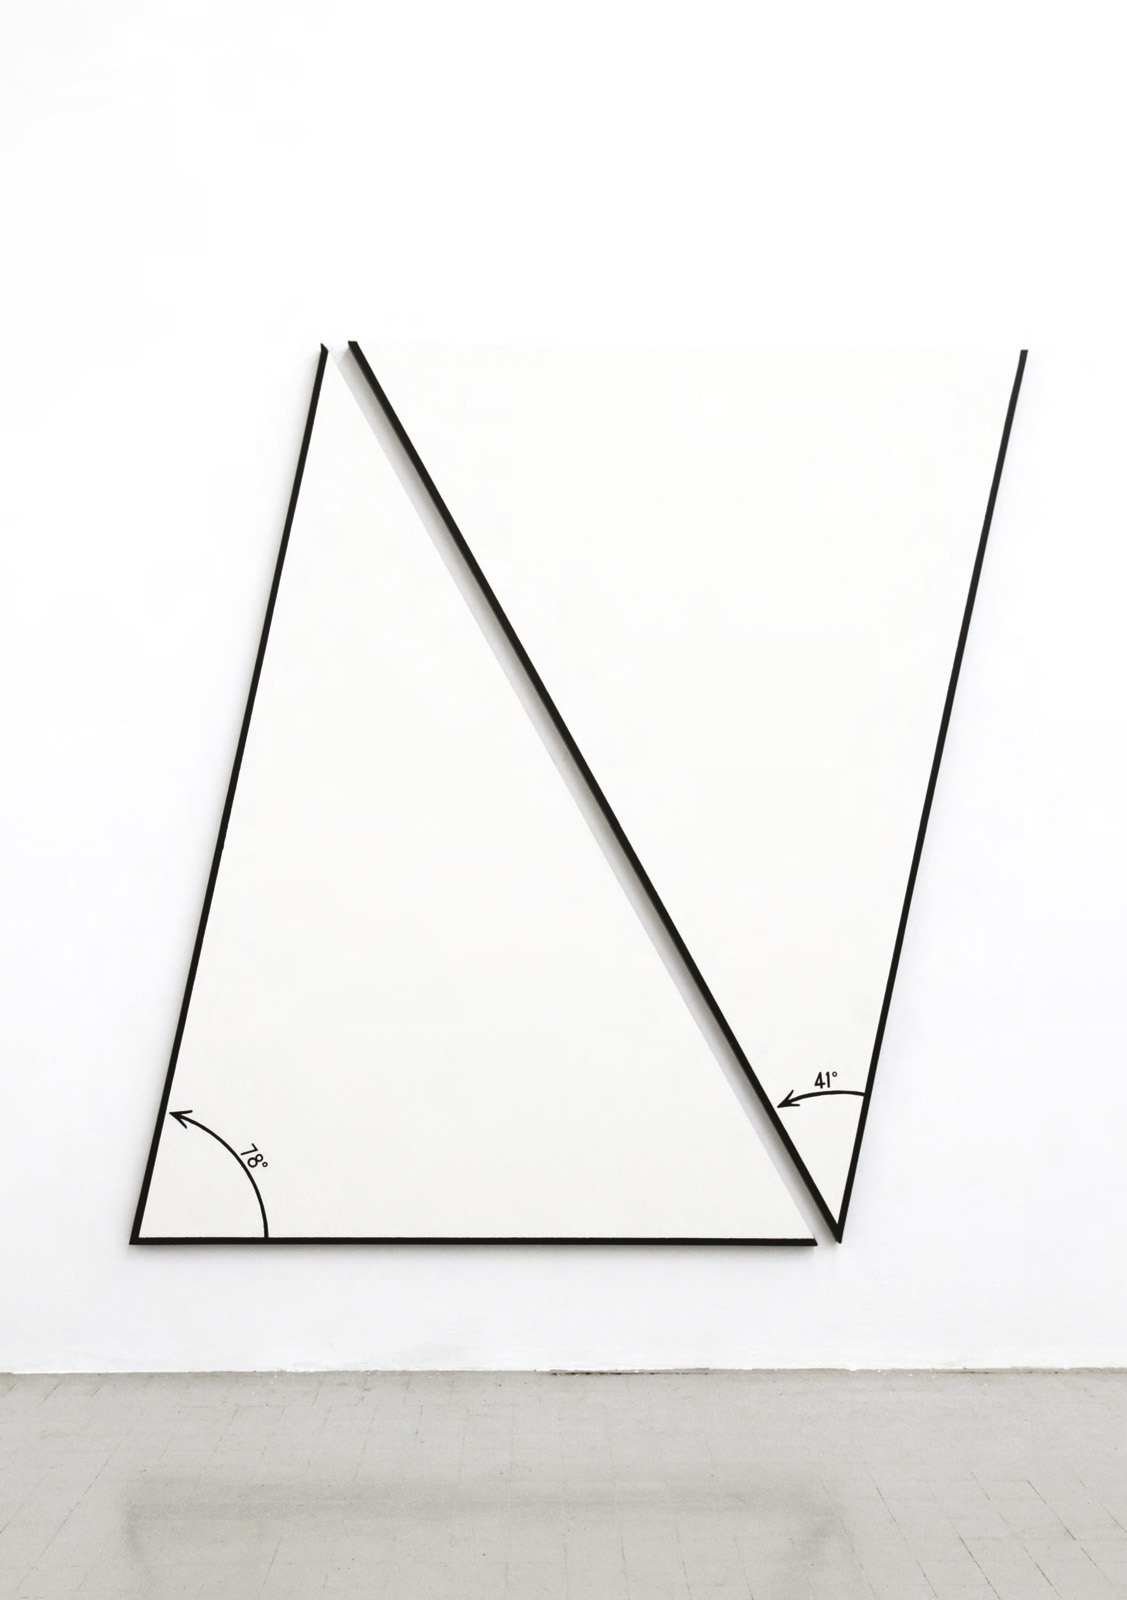 "Bernar Venet (b. 1941), ""Position of Two Angles of 78° and 41°"", 1977, acrylic on canvas, 212 x 210 cm."